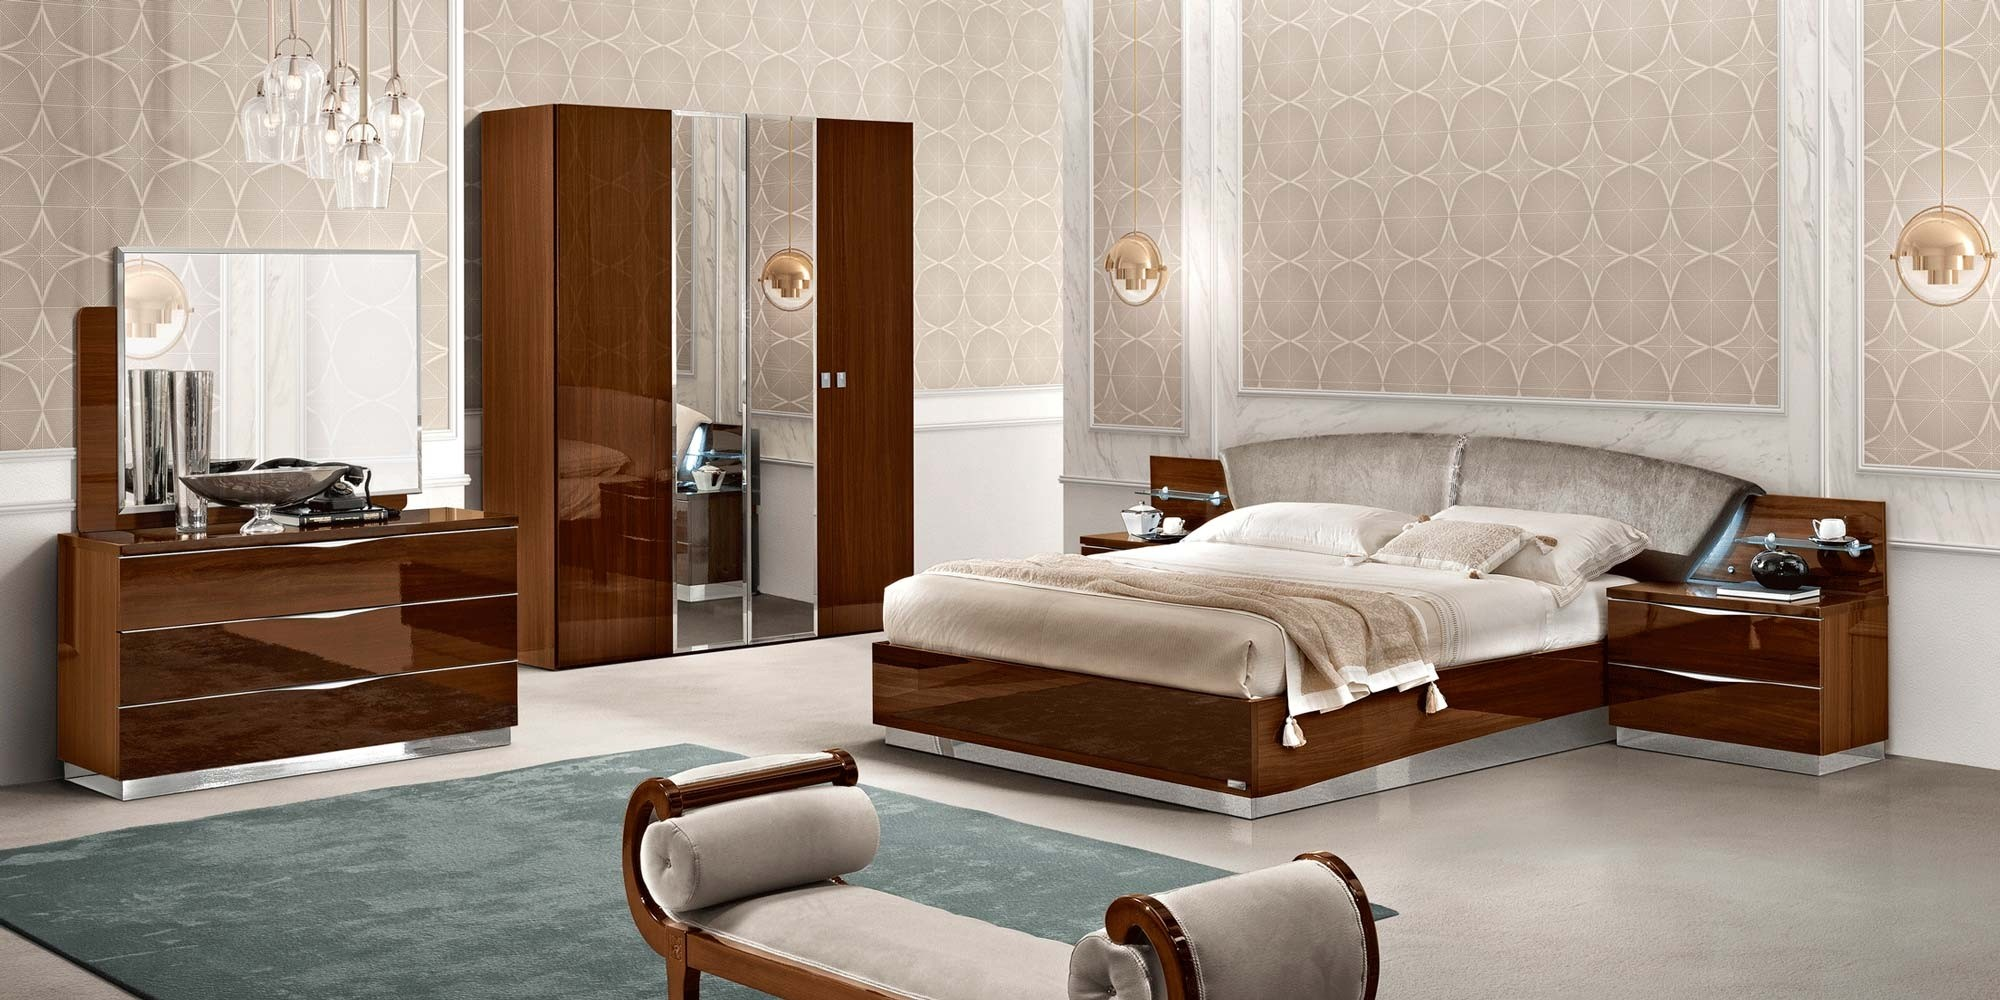 Esf Onda Bedroom Set In Walnut Lacquer By Camelgroup Italy